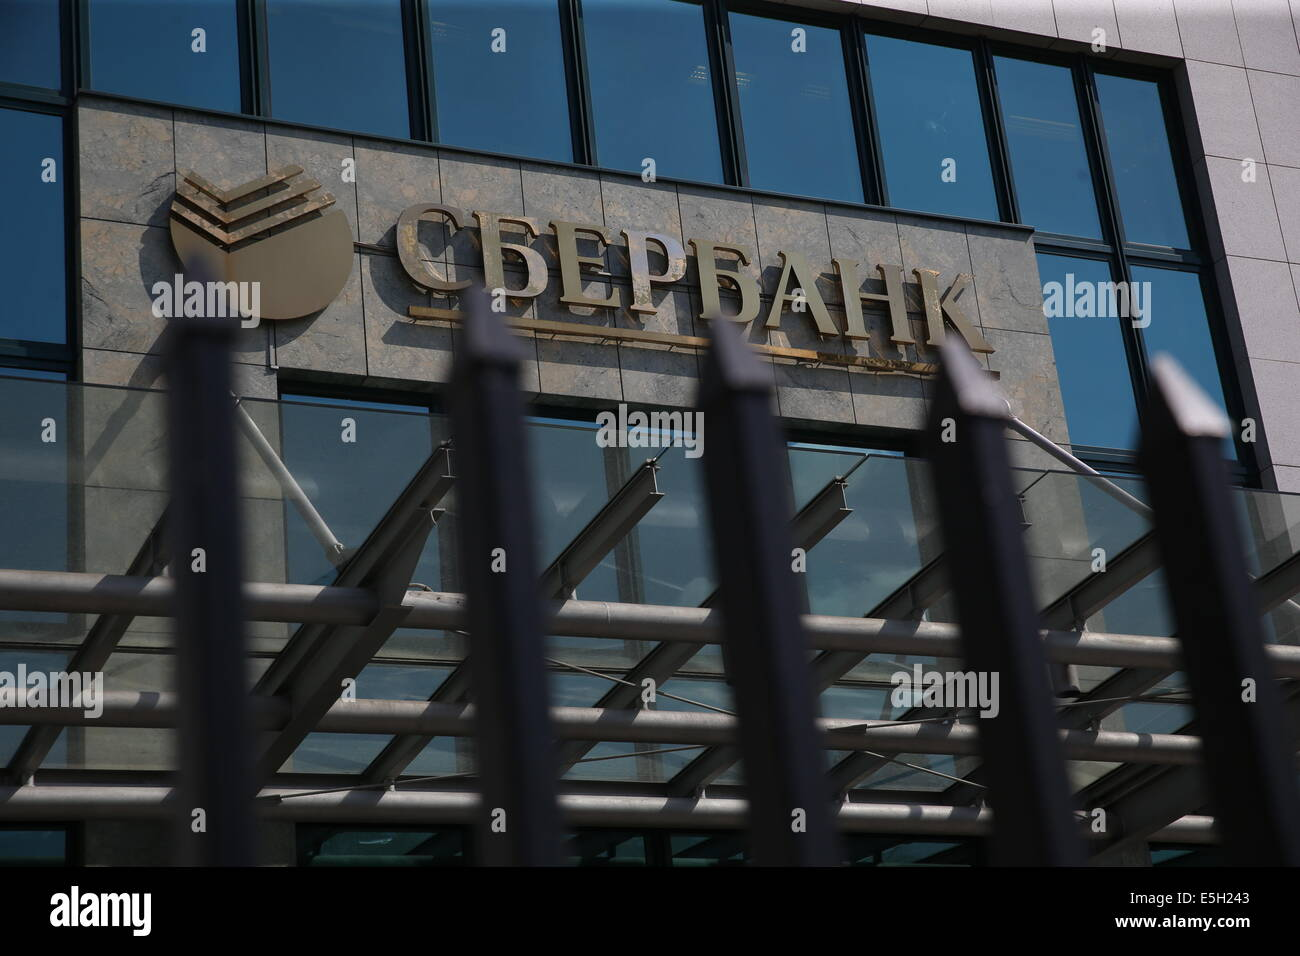 Moscow, Russia. 31st July, 2014. The main office of Sberbank. © Vyacheslav Prokofyev/ITAR-TASS/Alamy Live News - Stock Image